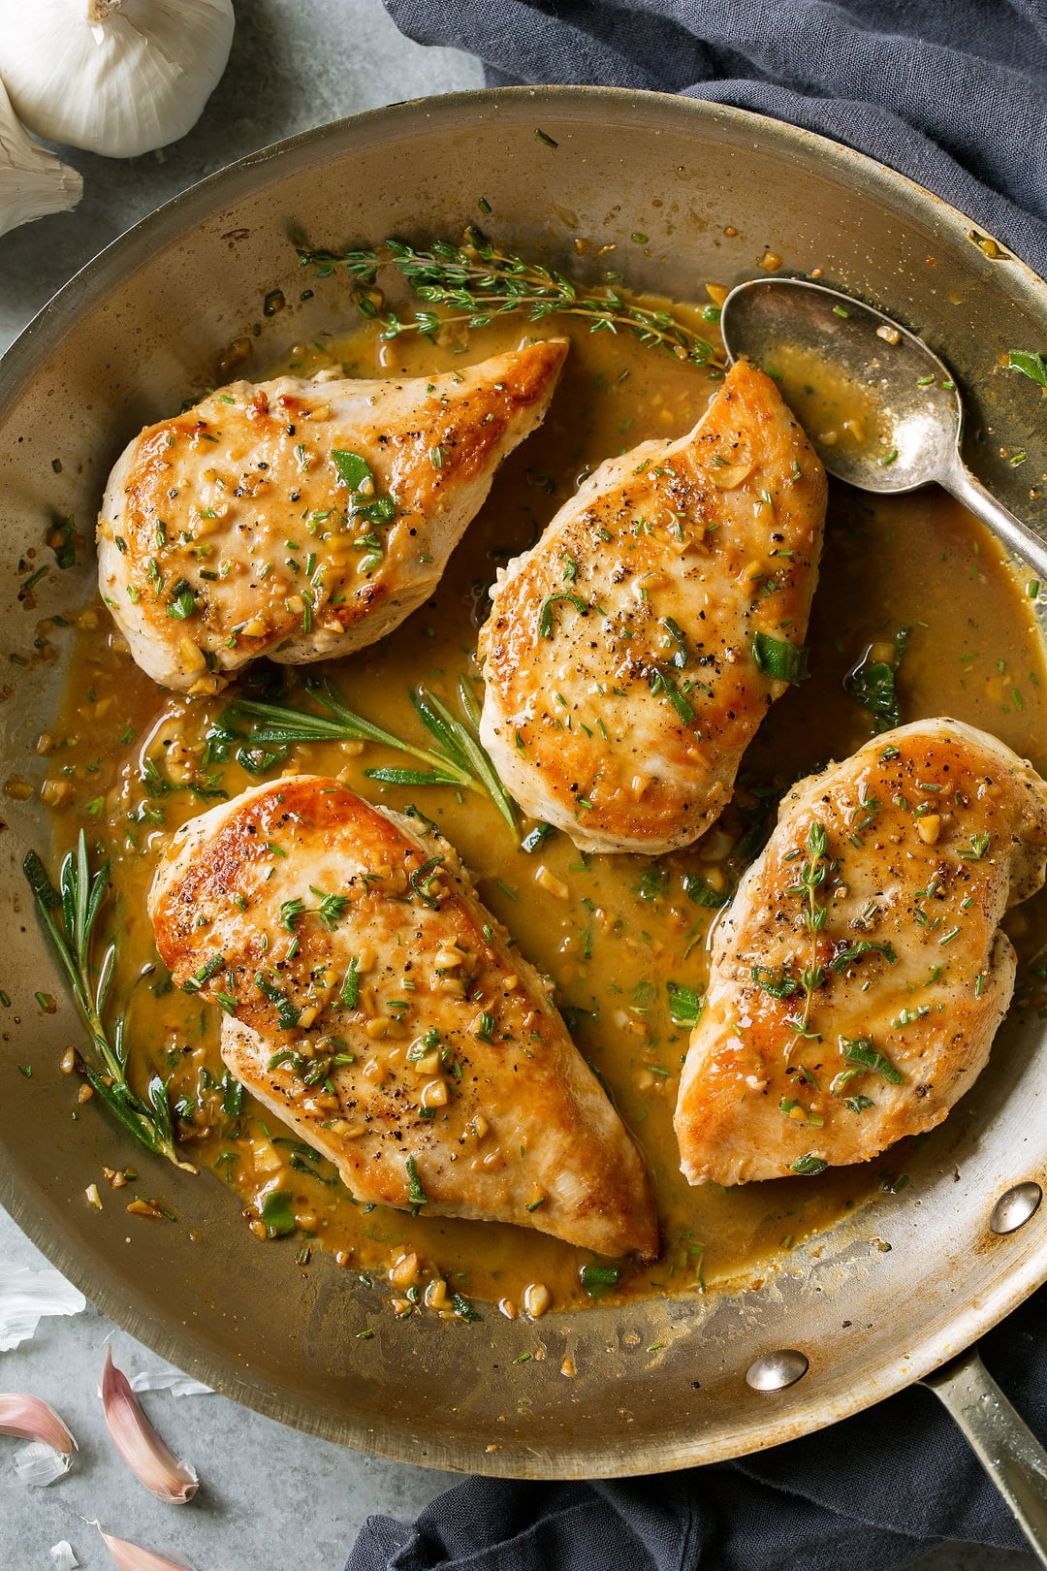 Skillet Chicken Recipe with Garlic Herb Butter Sauce - Cooking Classy - Recipes Chicken Breast Skillet